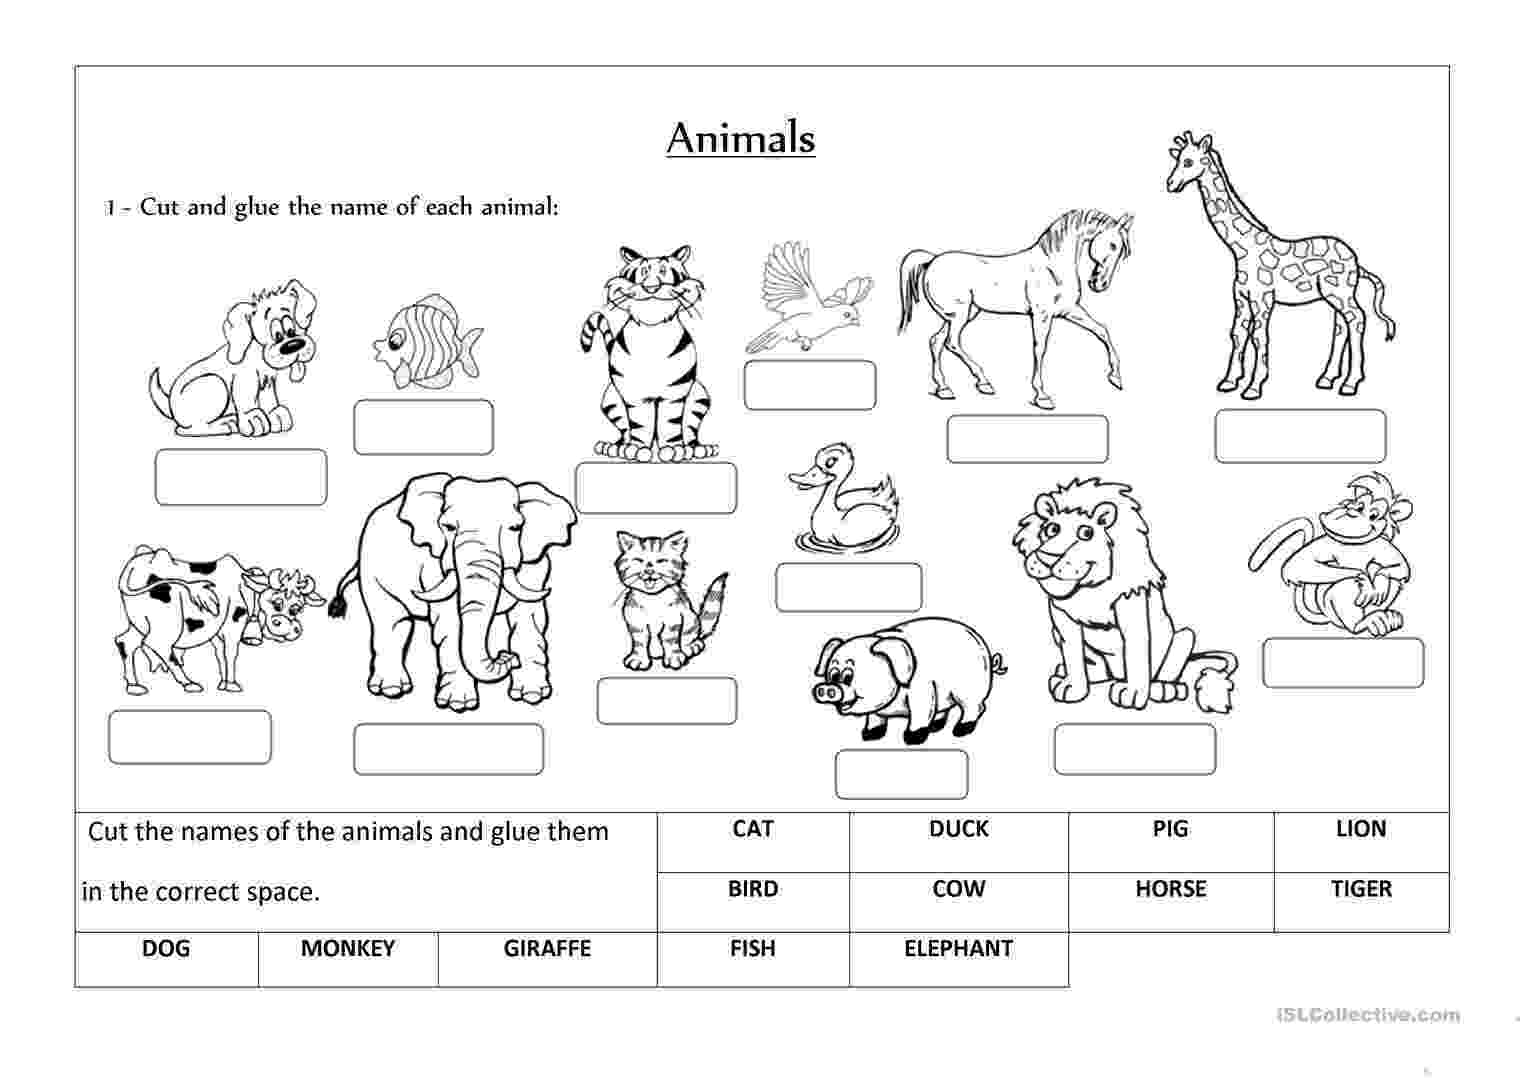 animals coloring worksheets for kindergarten animals label and classify english esl worksheets for for coloring kindergarten animals worksheets